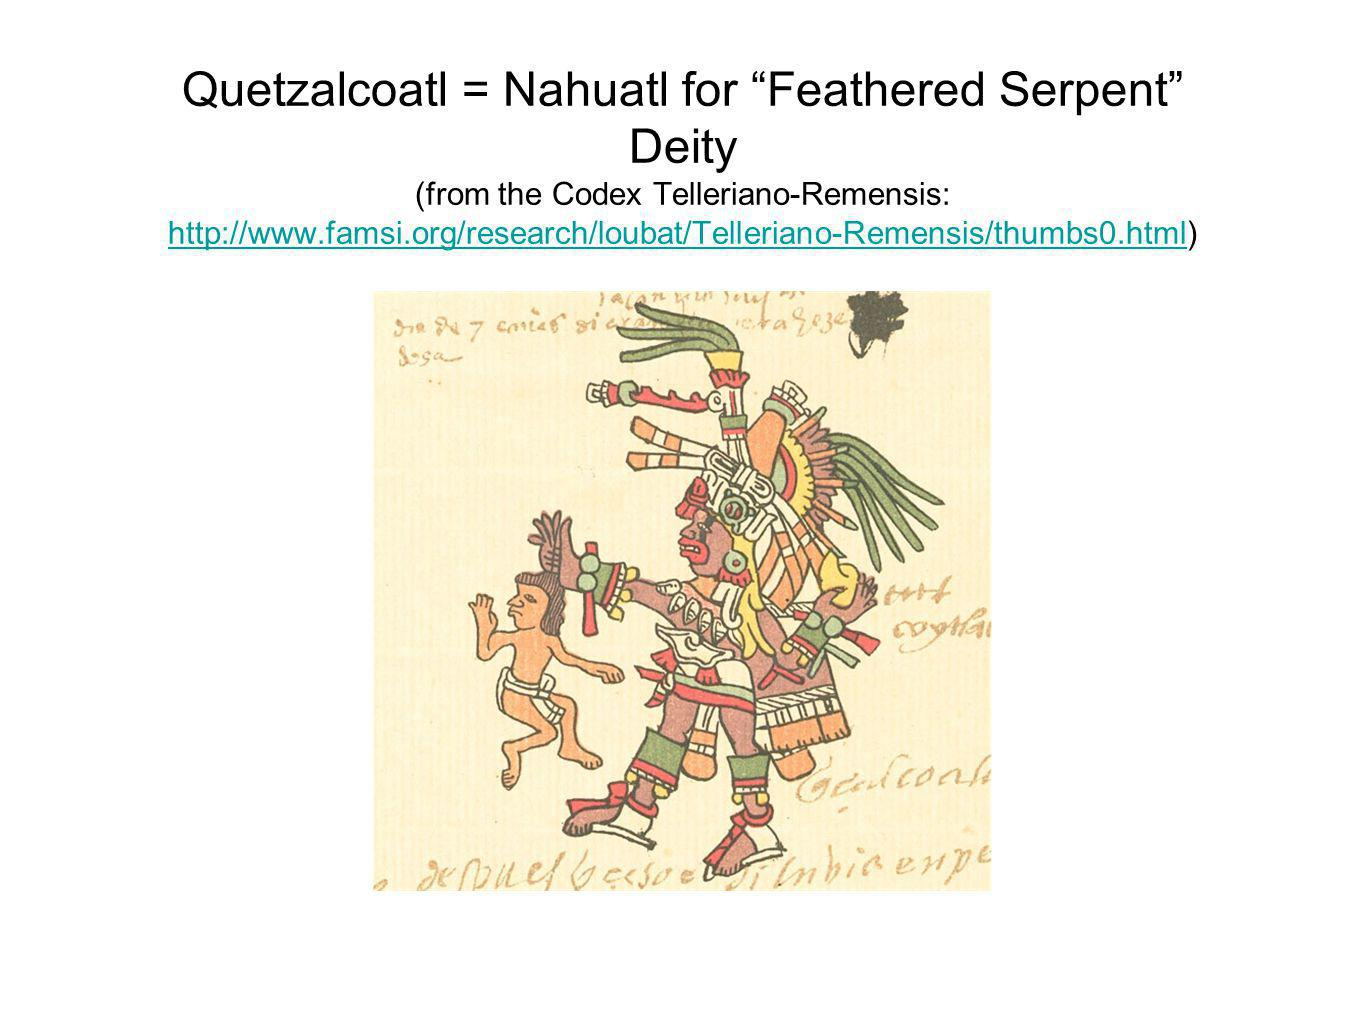 Quetzalcoatl = Nahuatl for Feathered Serpent Deity (from the Codex Telleriano-Remensis: http://www.famsi.org/research/loubat/Telleriano-Remensis/thumbs0.html) http://www.famsi.org/research/loubat/Telleriano-Remensis/thumbs0.html